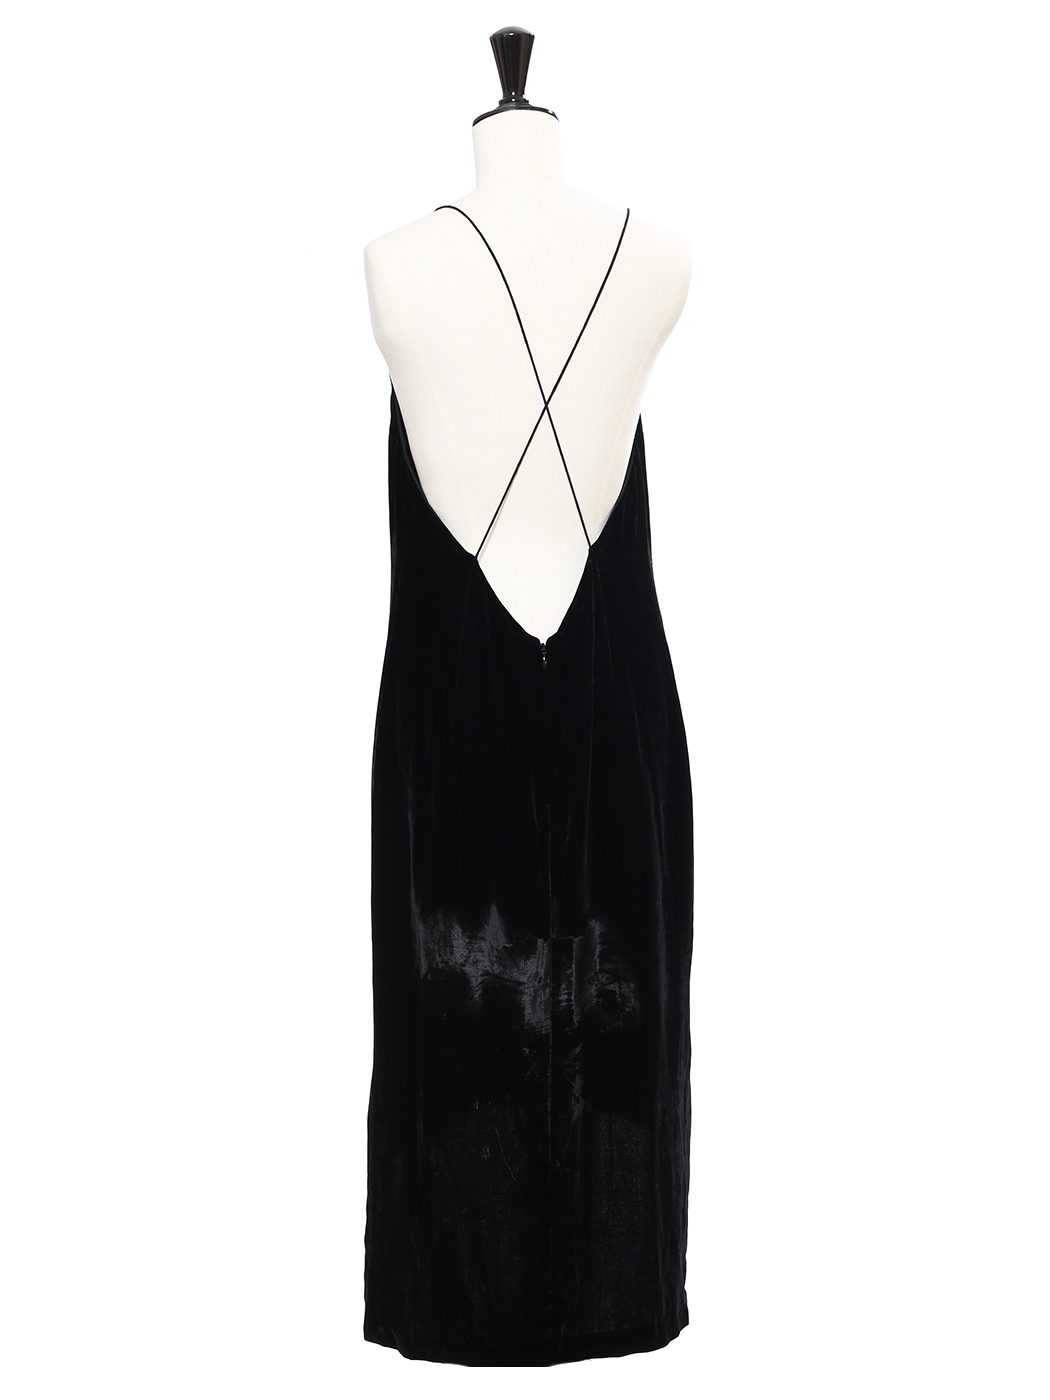 Louise Paris Dion Lee Black Silk Velvet Cami Dress With